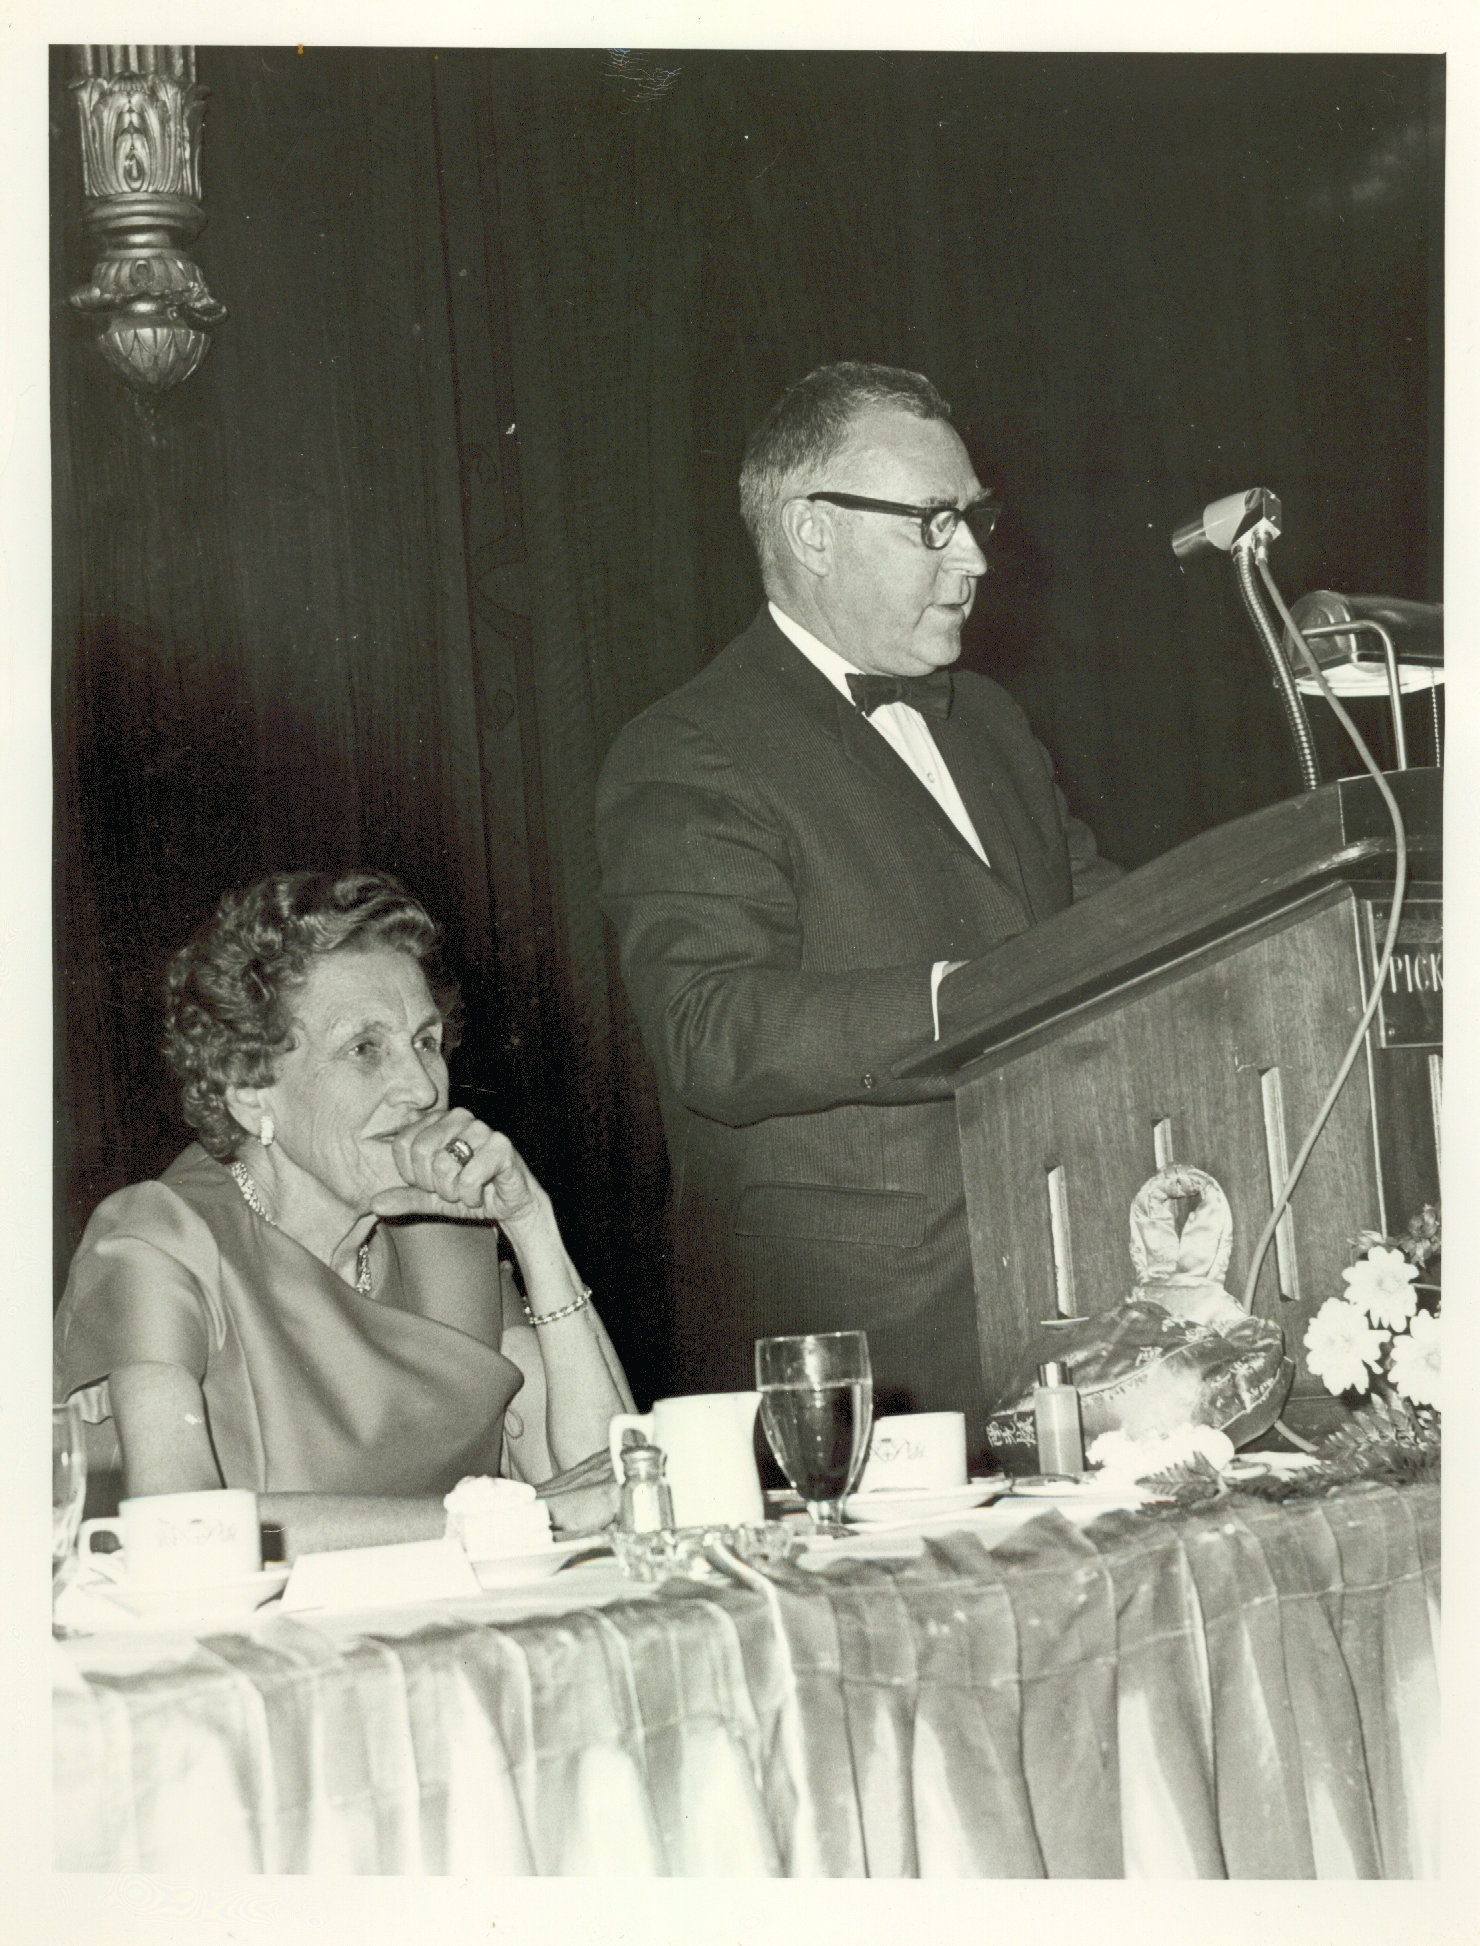 Mary Switzer and Richard Hoover at banquet, ca. 1965